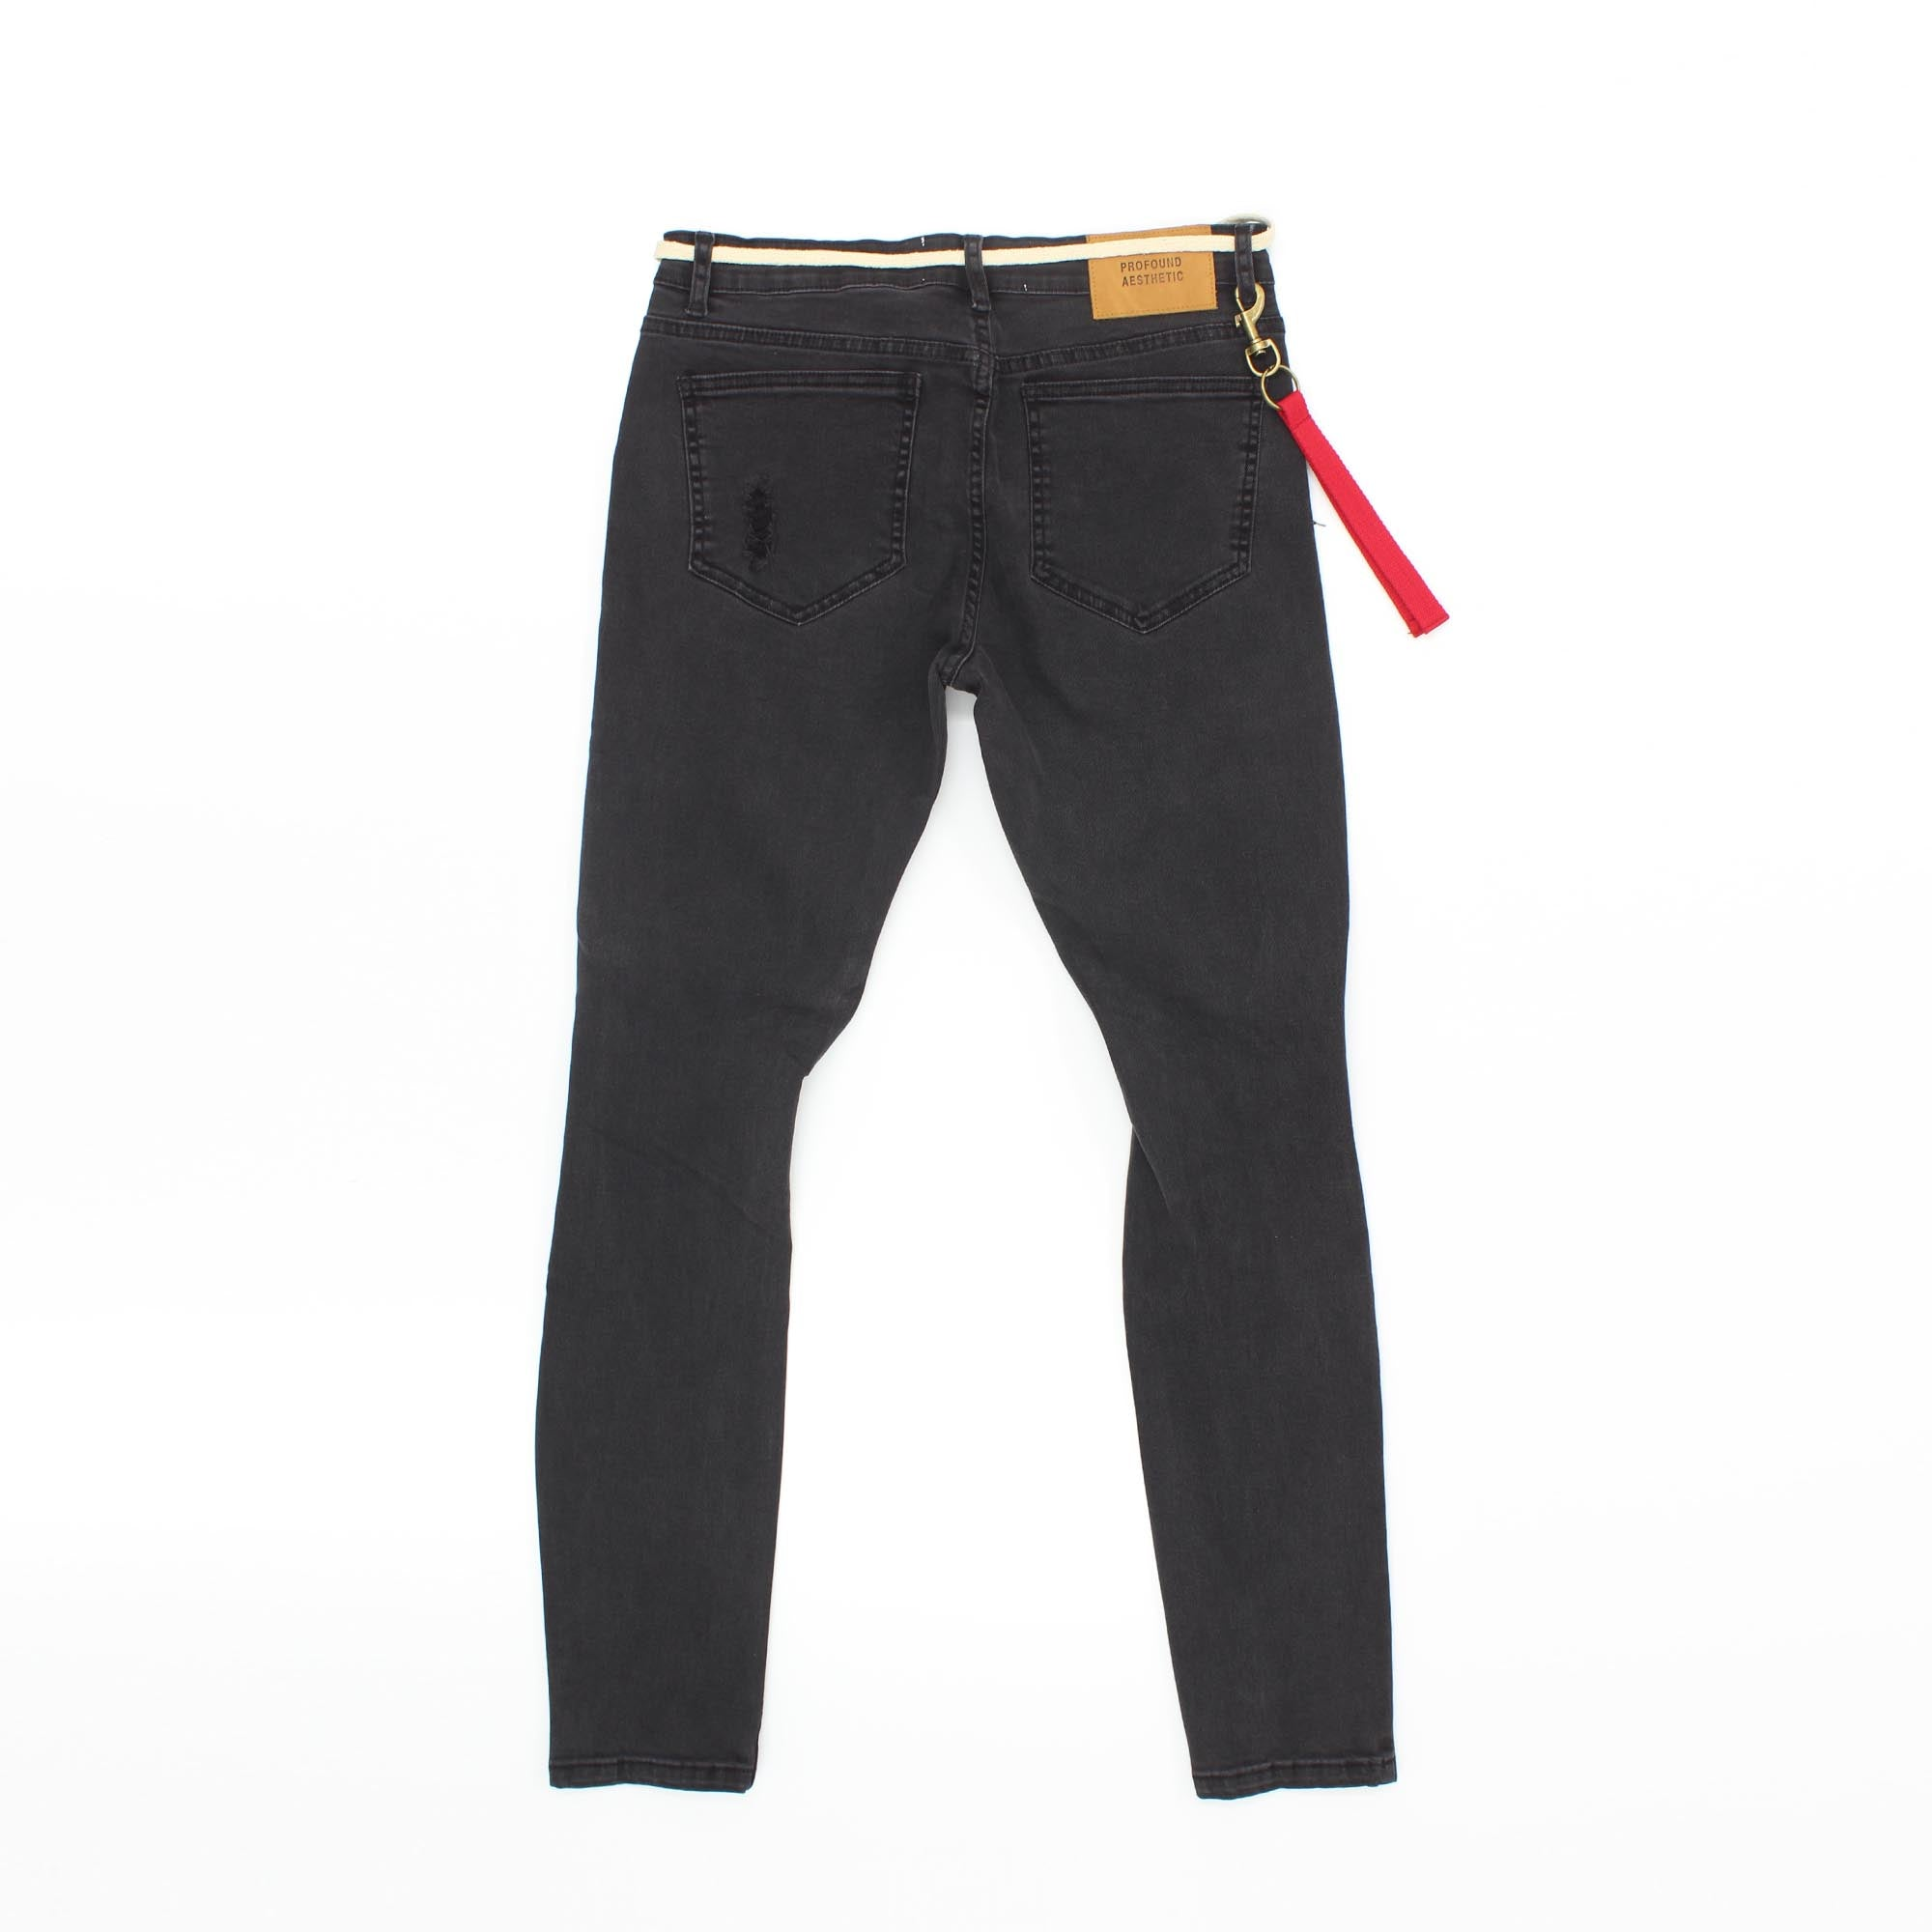 Profound Aesthetic Washed Destroyed Jeans Black